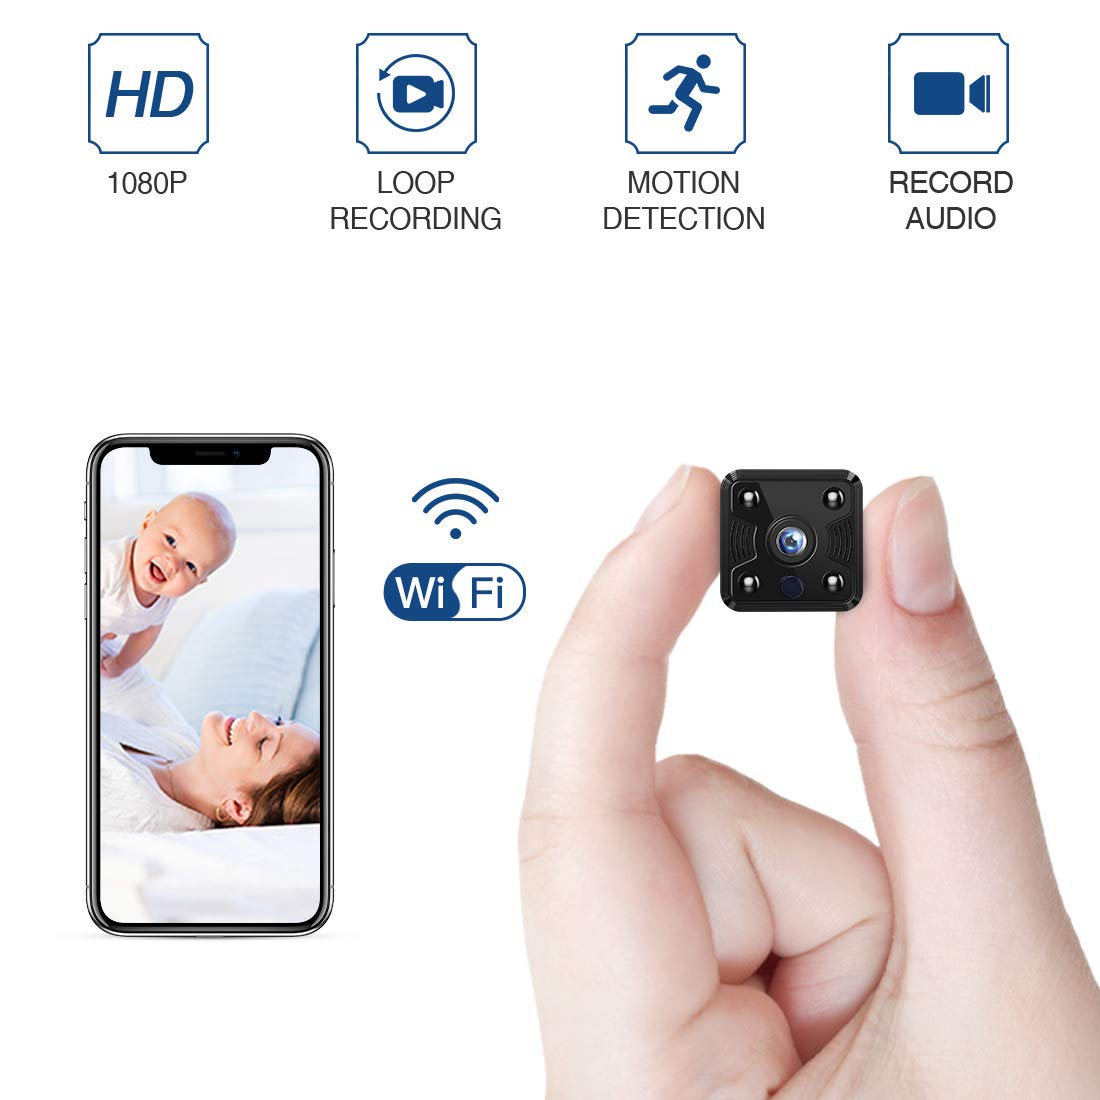 FREDI Hidden Spy Camera, 1080P HD Mini Wireless WiFi Small Nanny Cam with Night Vision, Motion Detection, Loop Recording, Flexible Magnetic Bracket for Home and Office - Work with iOS Android PC by FREDI